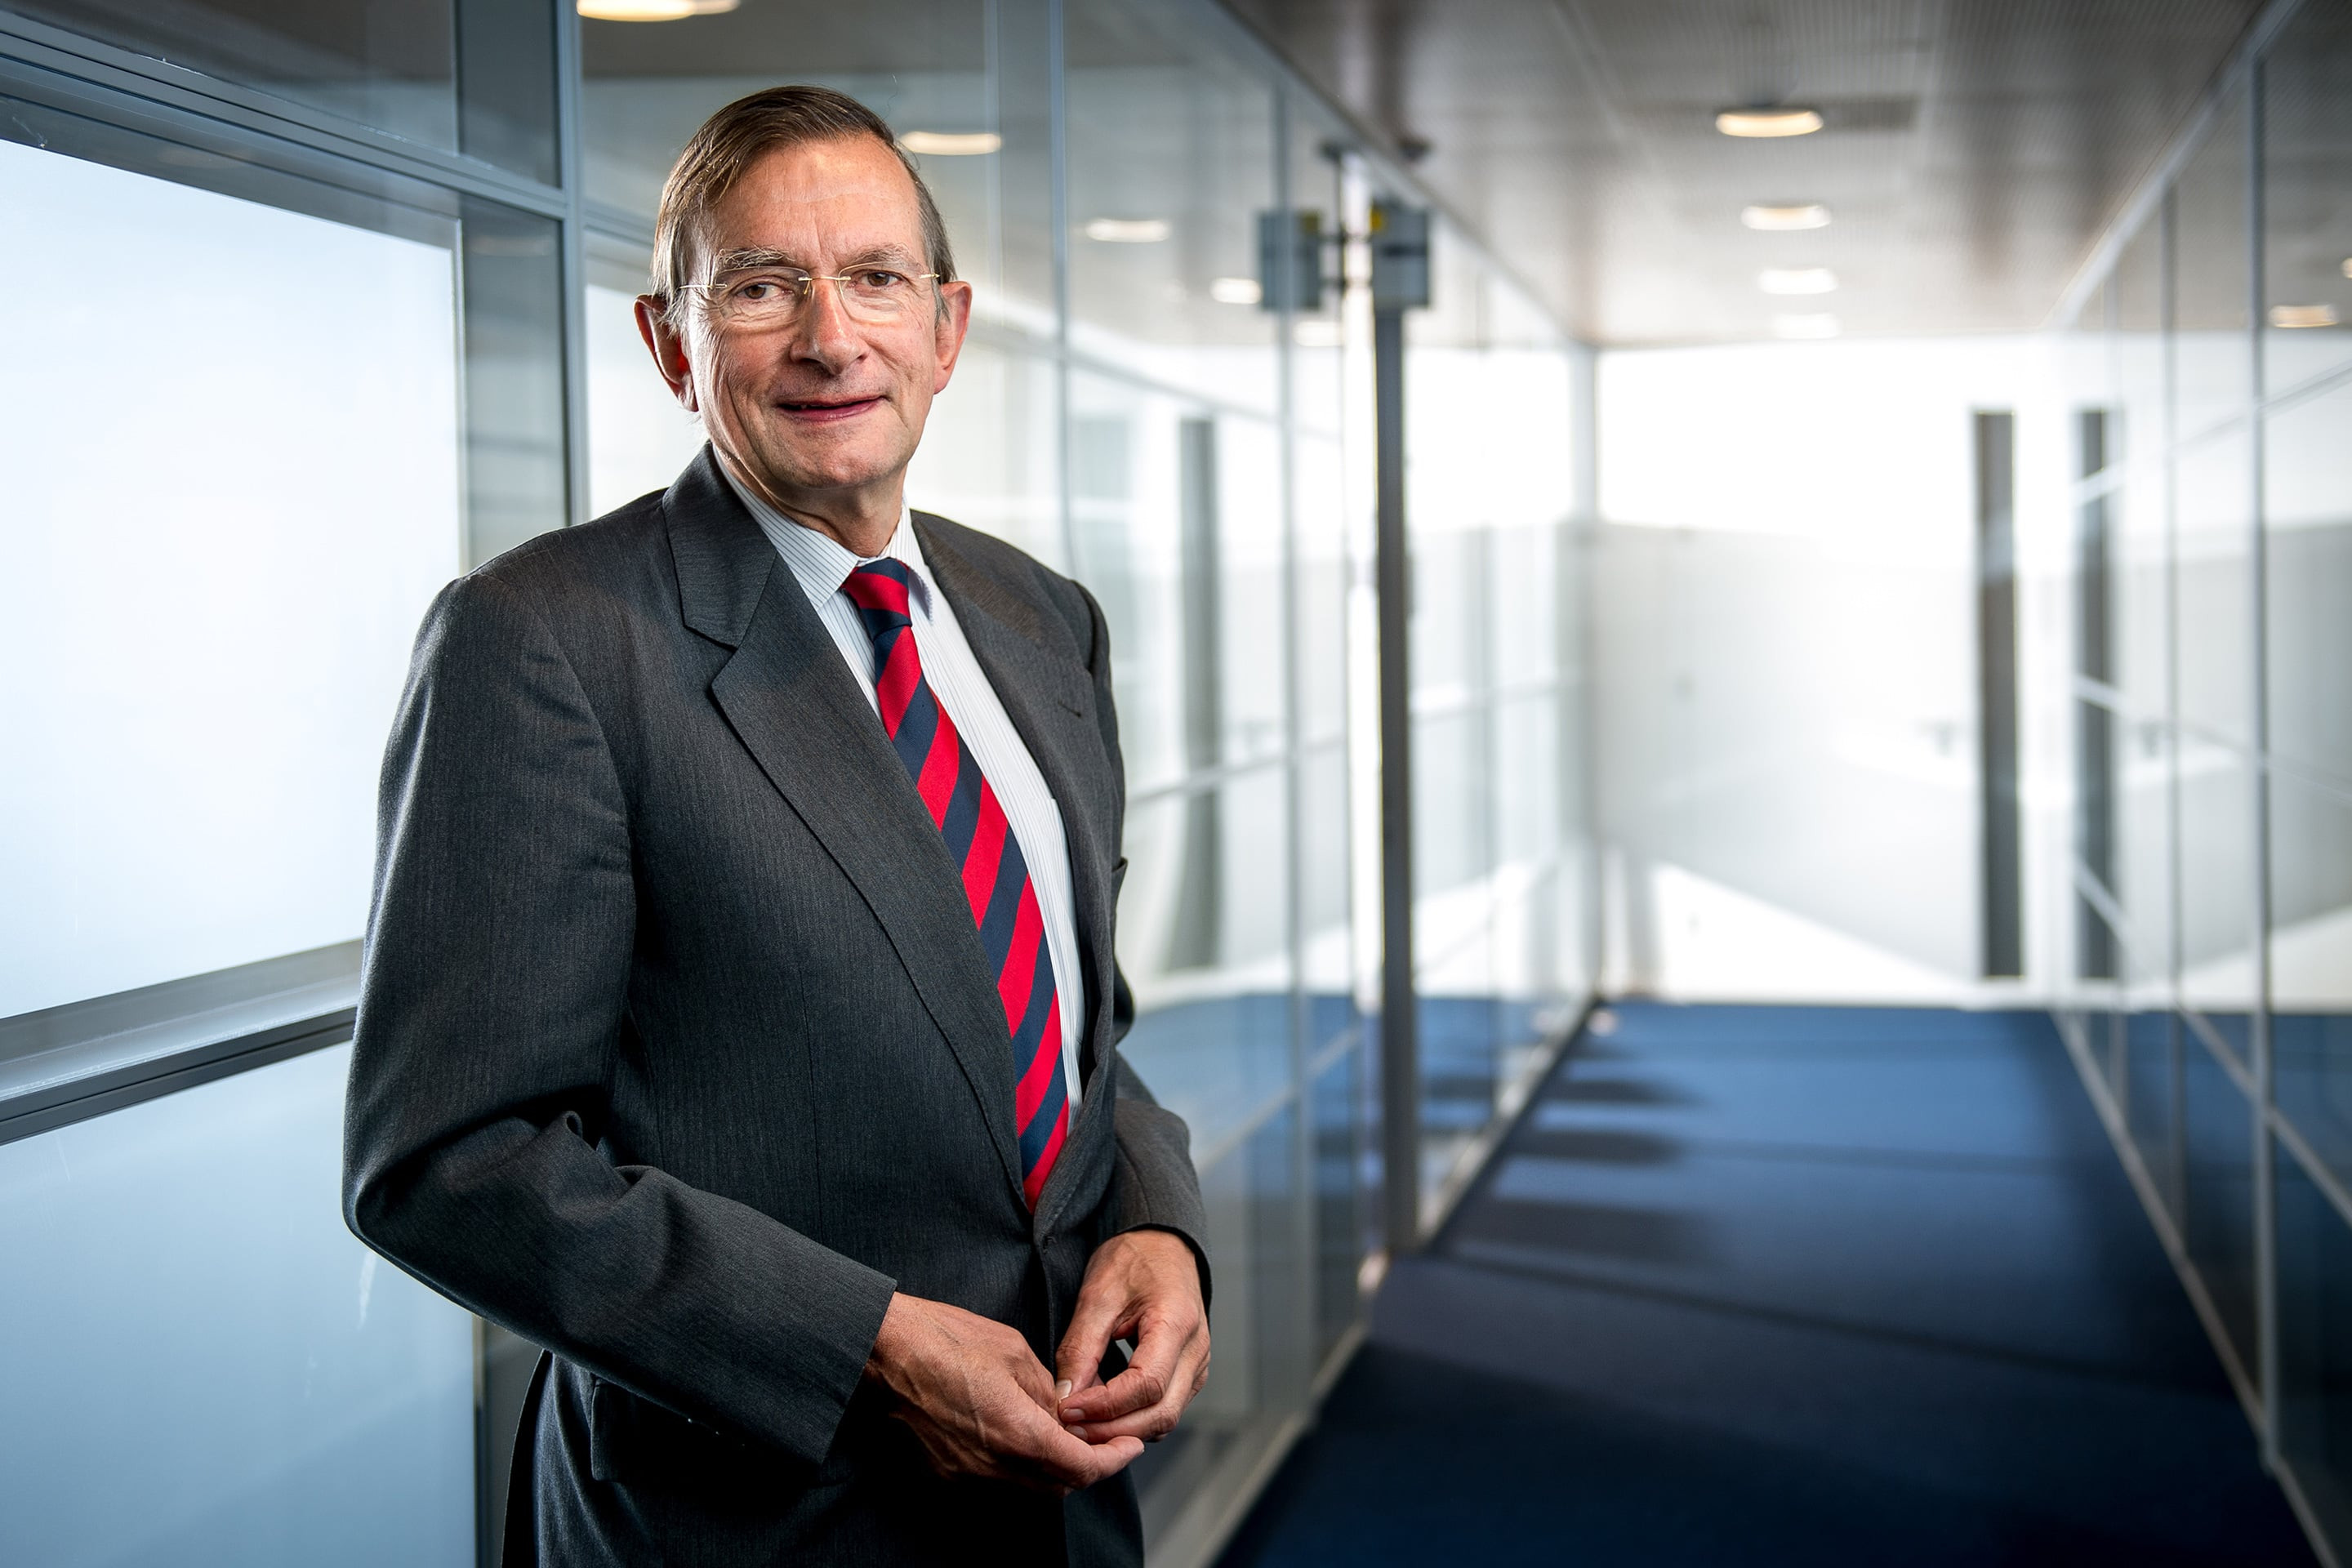 Jeroen van der Veer, the former CEO of Shell, is now co-chairman of the World Economic Forum's Global Forum Agenda for Energy